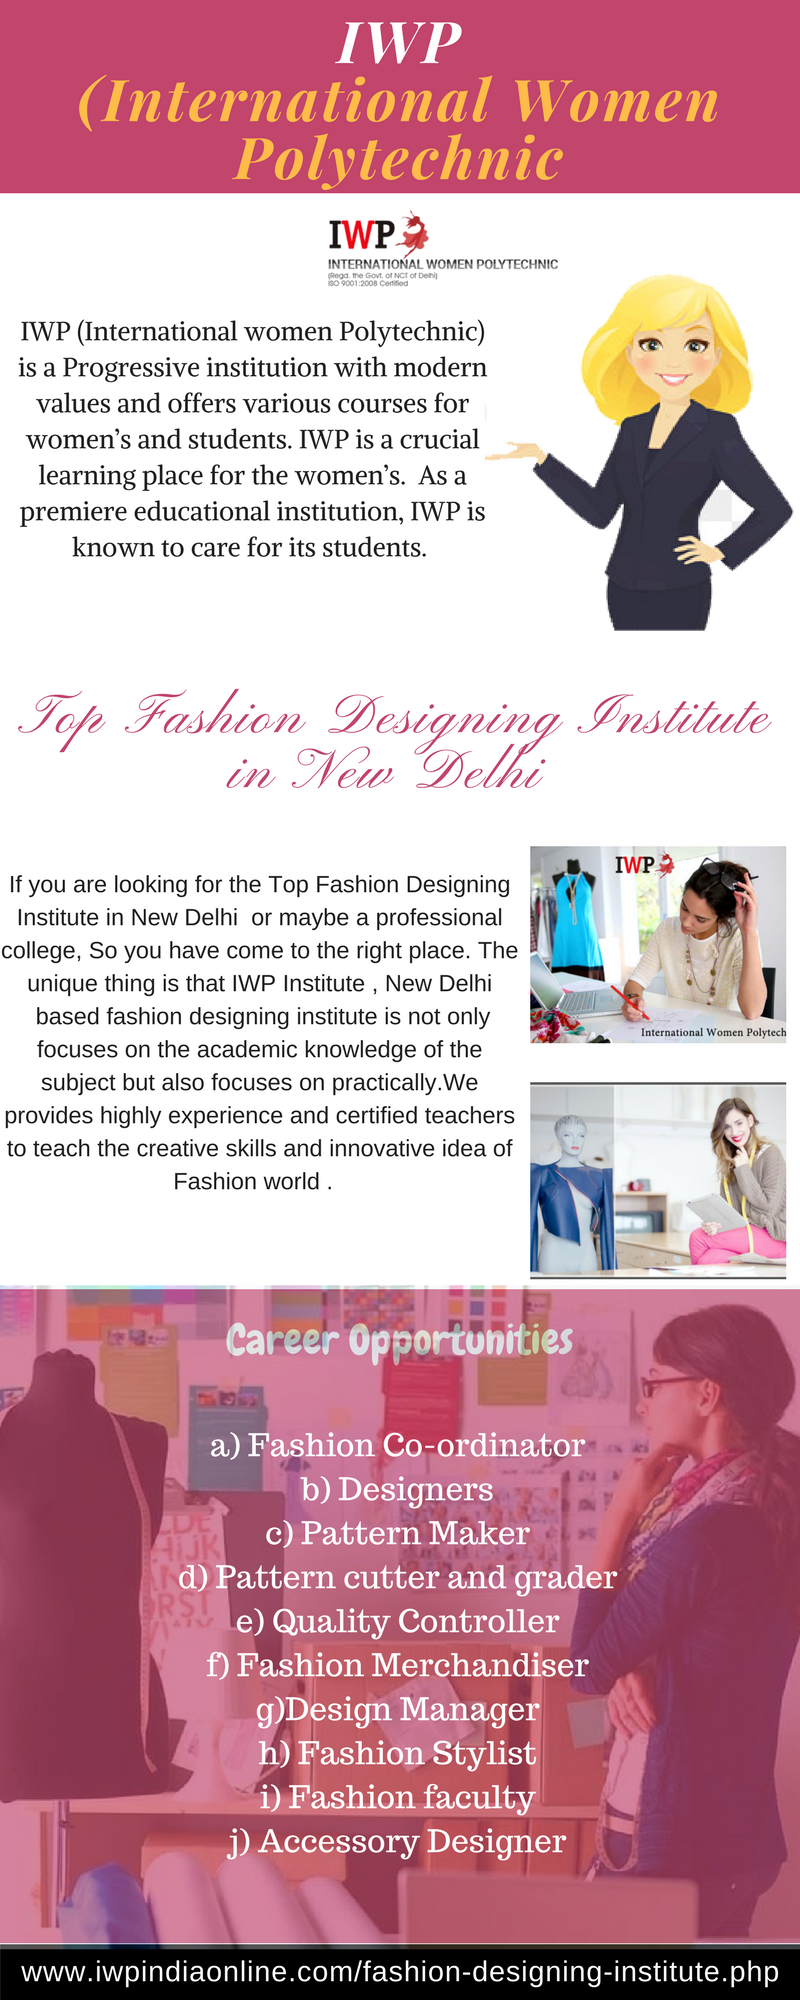 International Women Polytechnic Is A Crucial Learning Place For The Women S As One Of The B Online Classes Learning Learning Place Fashion Designing Institute